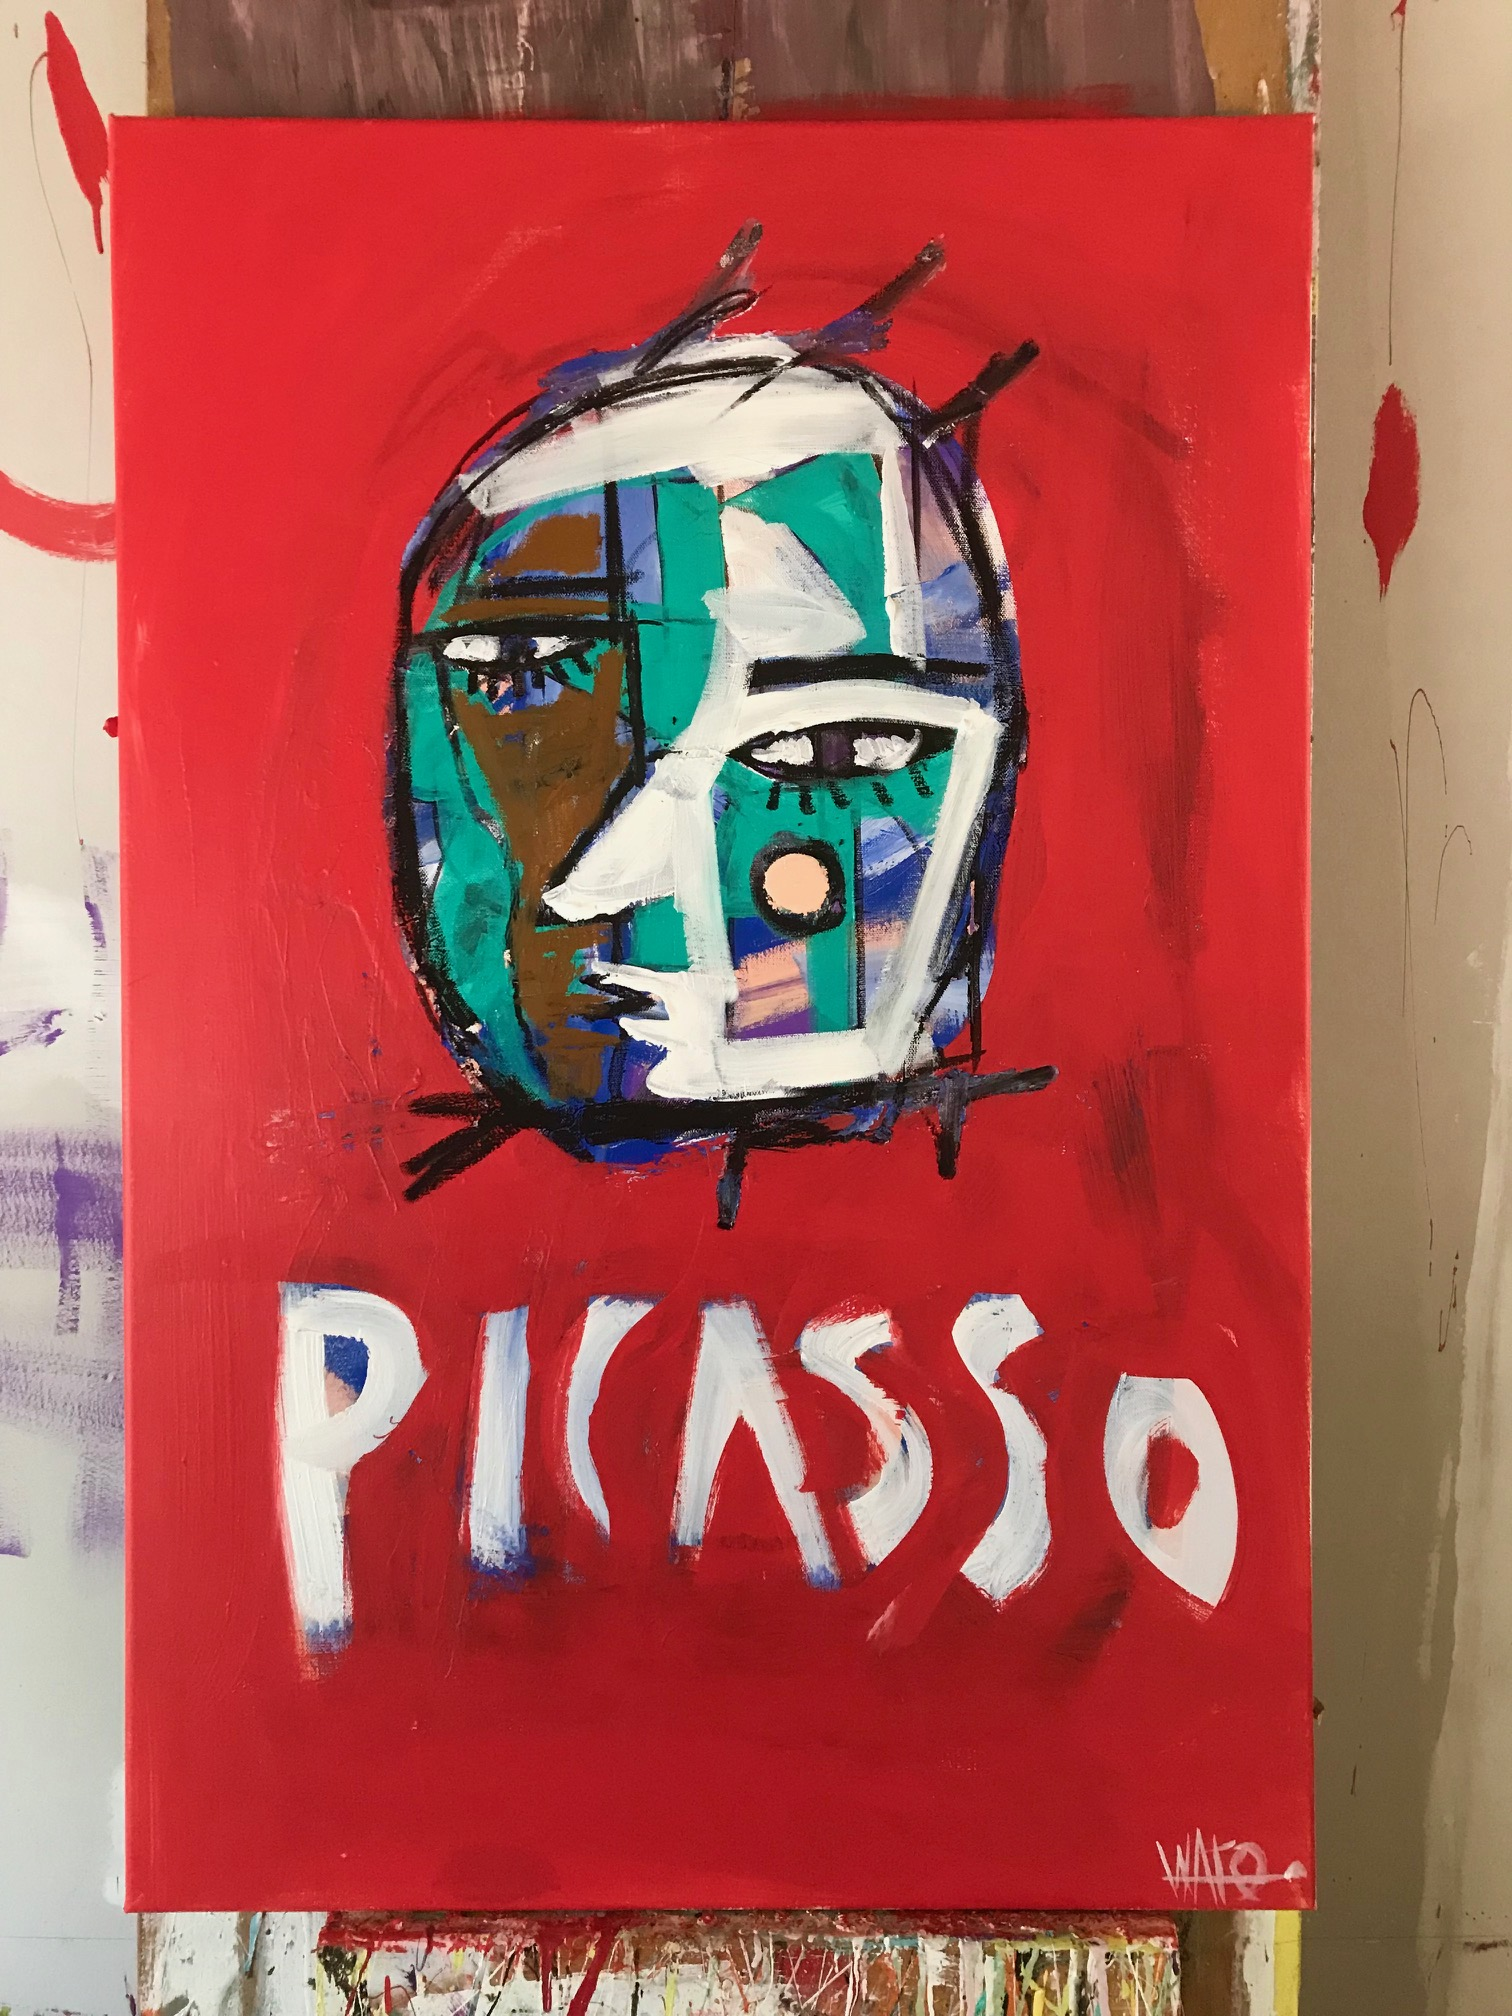 PICASSO. SOLD